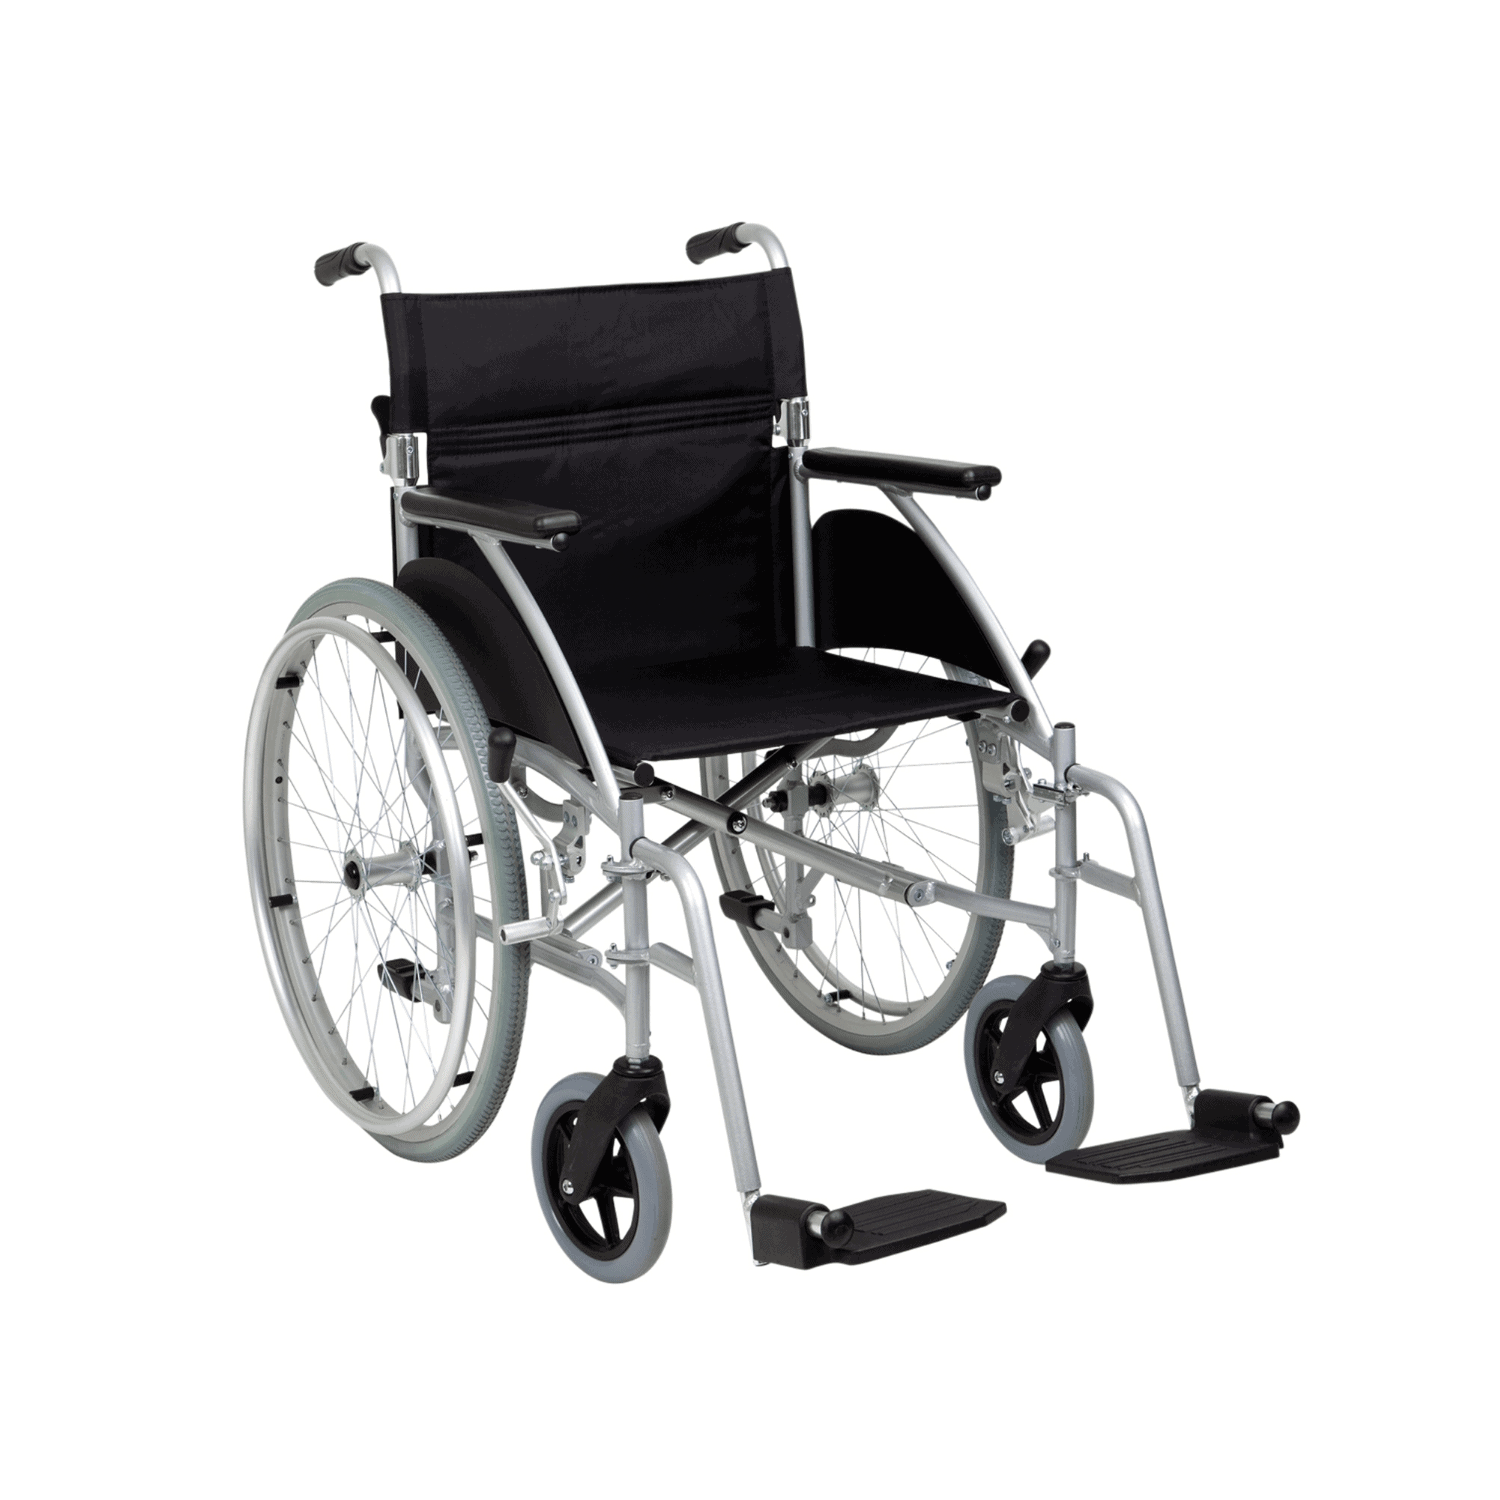 Days Whirl Wheelchair Self-propelled – 18